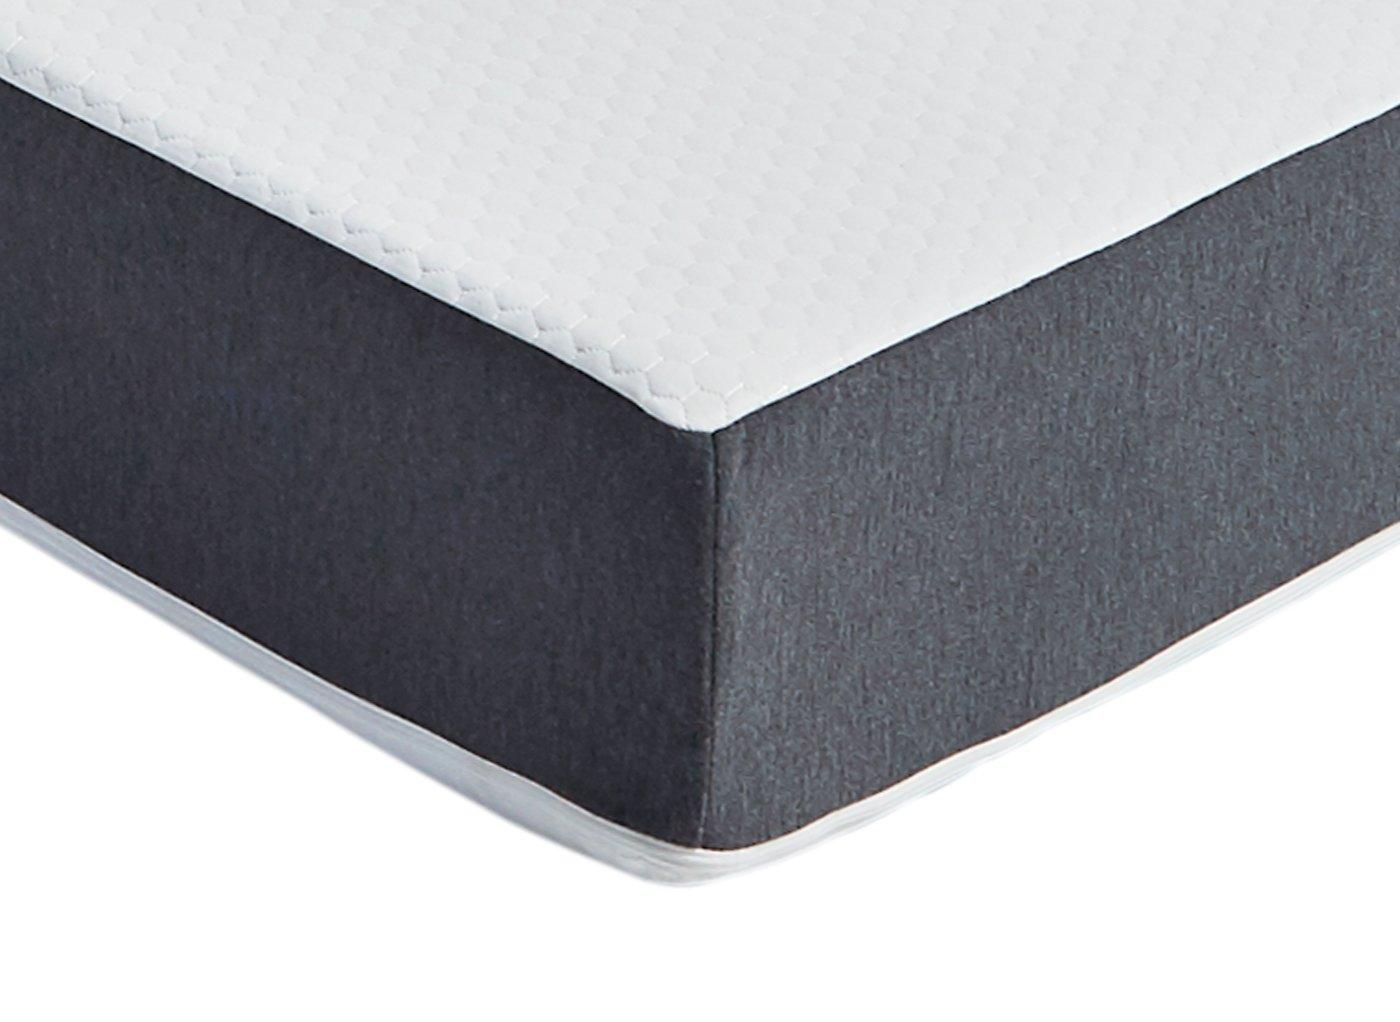 Single Pocket Sprung Memory Foam Mattress Doze Luxe Pocket Sprung Mattress Doze Mattresses Brands